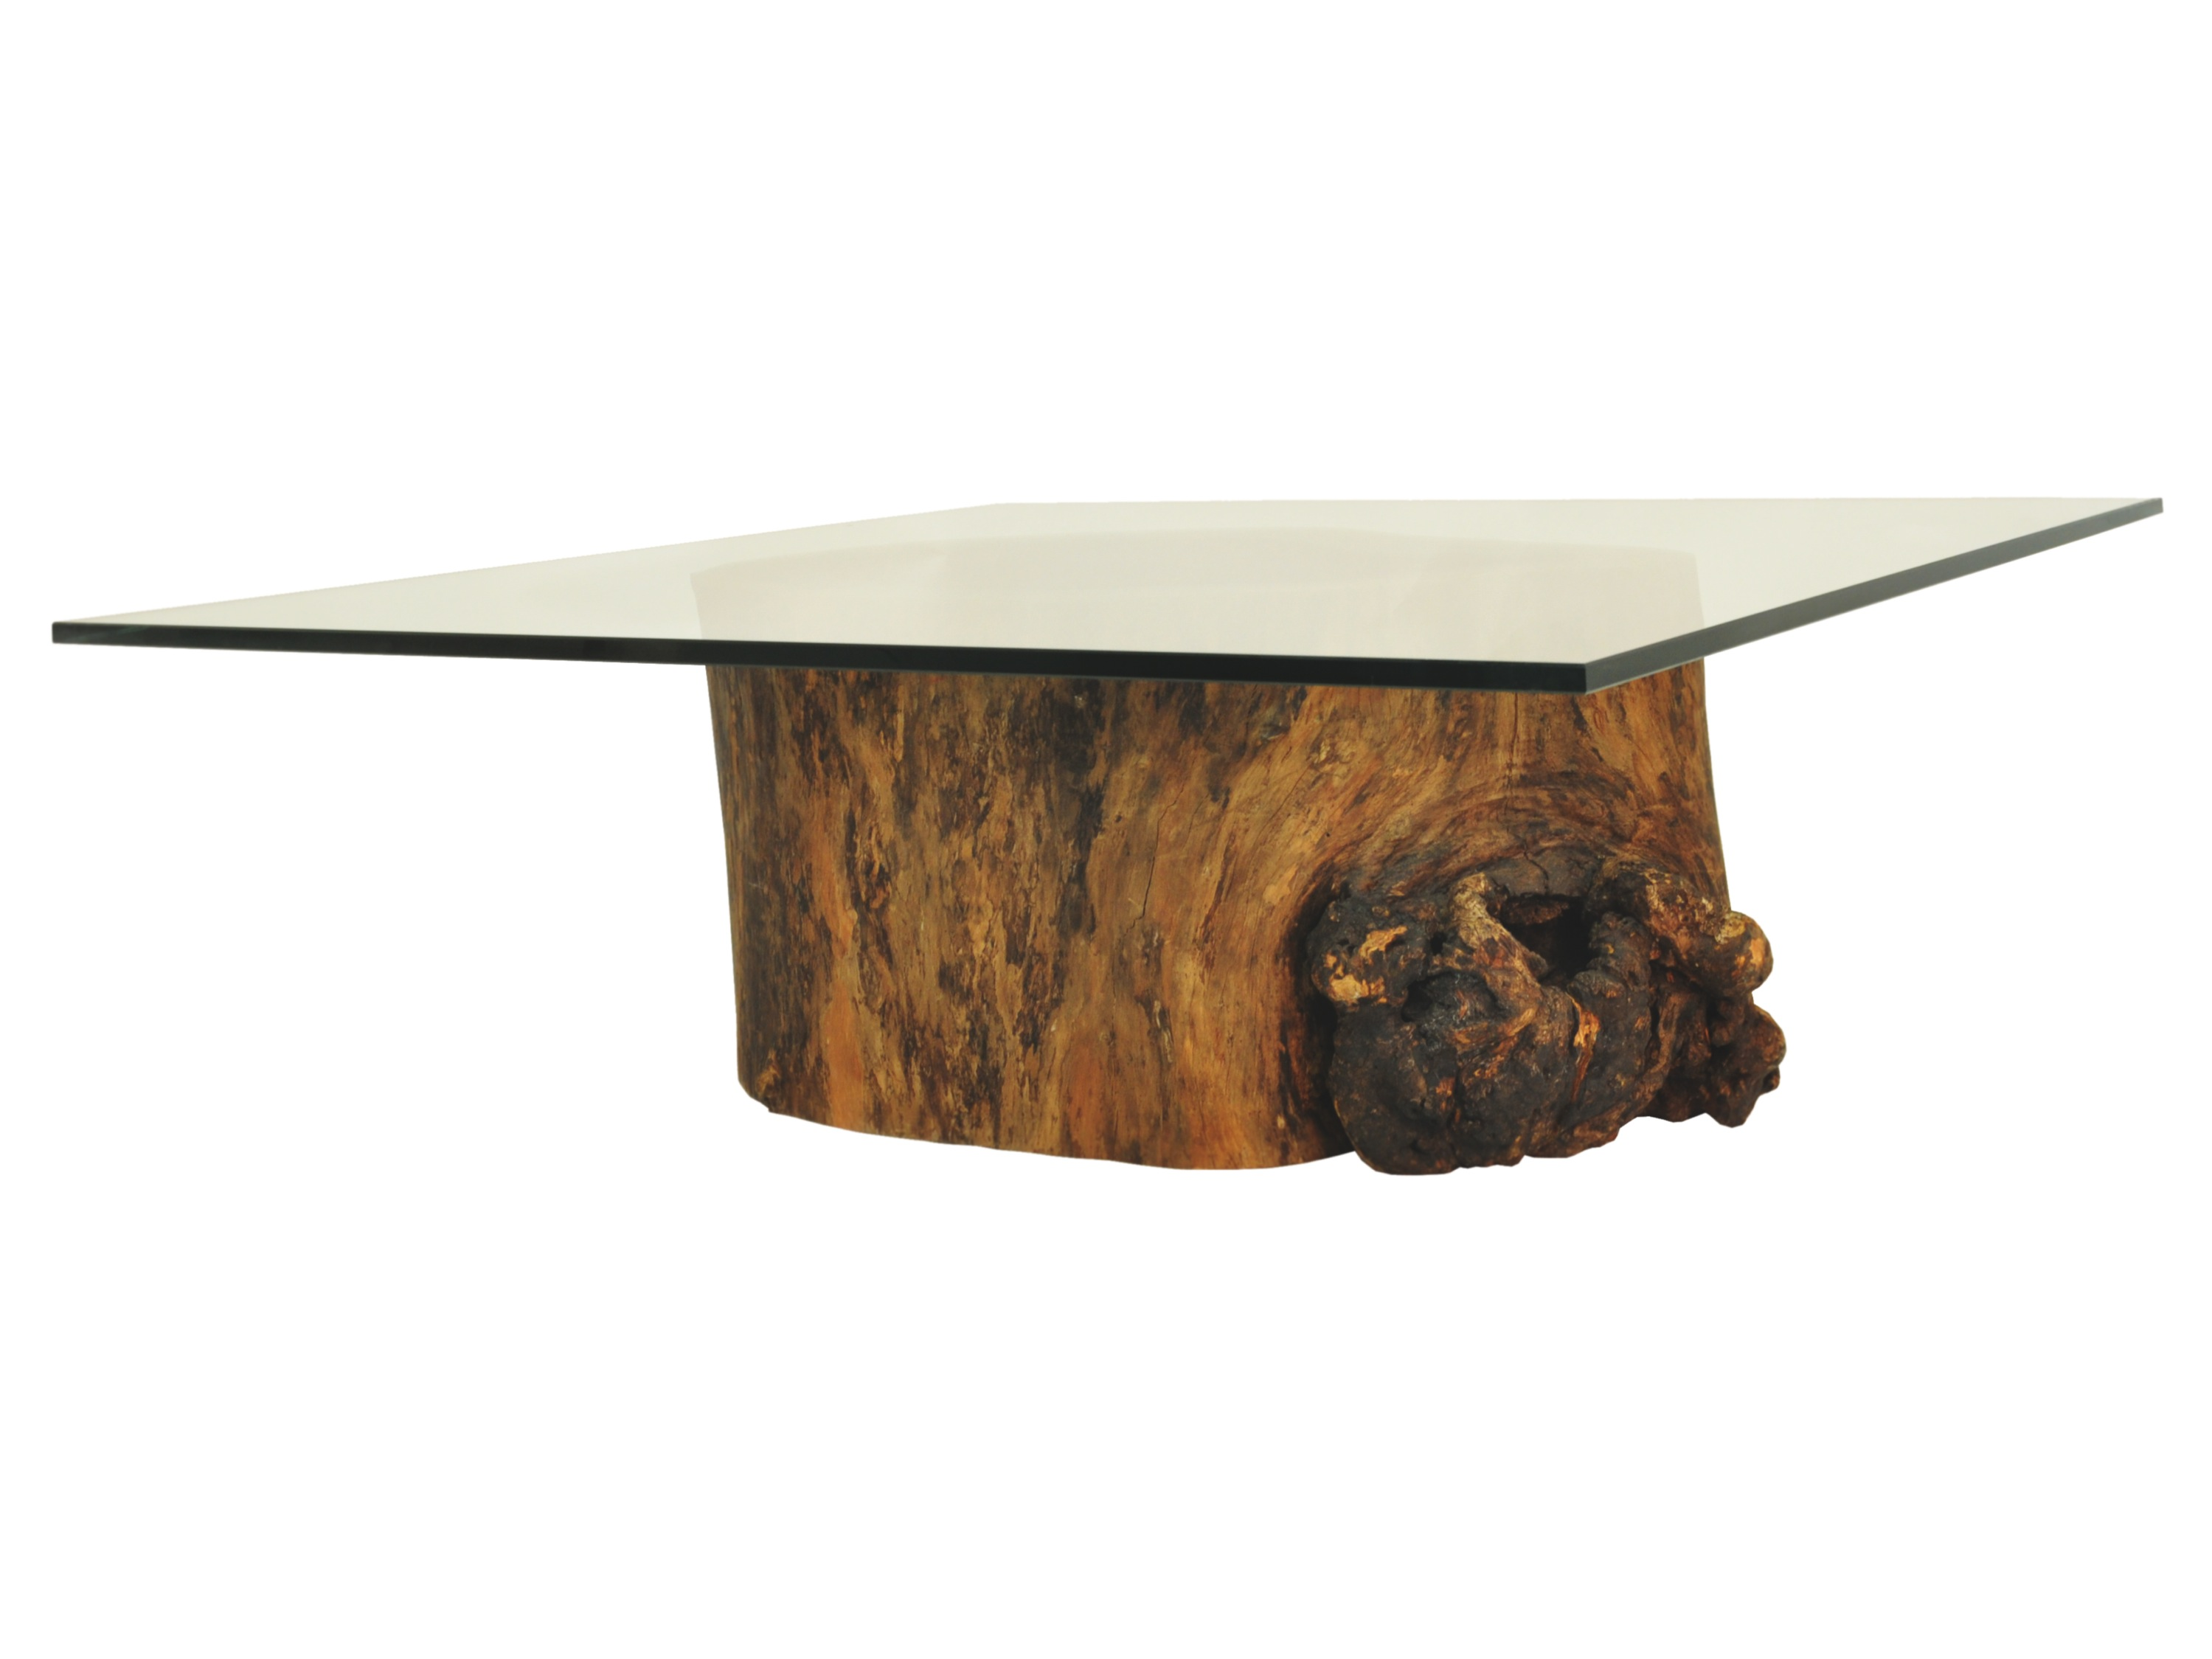 Glass Coffee Tables On Sale Too Much Brown Furniture A National Epidemic Handmade Contemporary Furniture (Image 7 of 10)